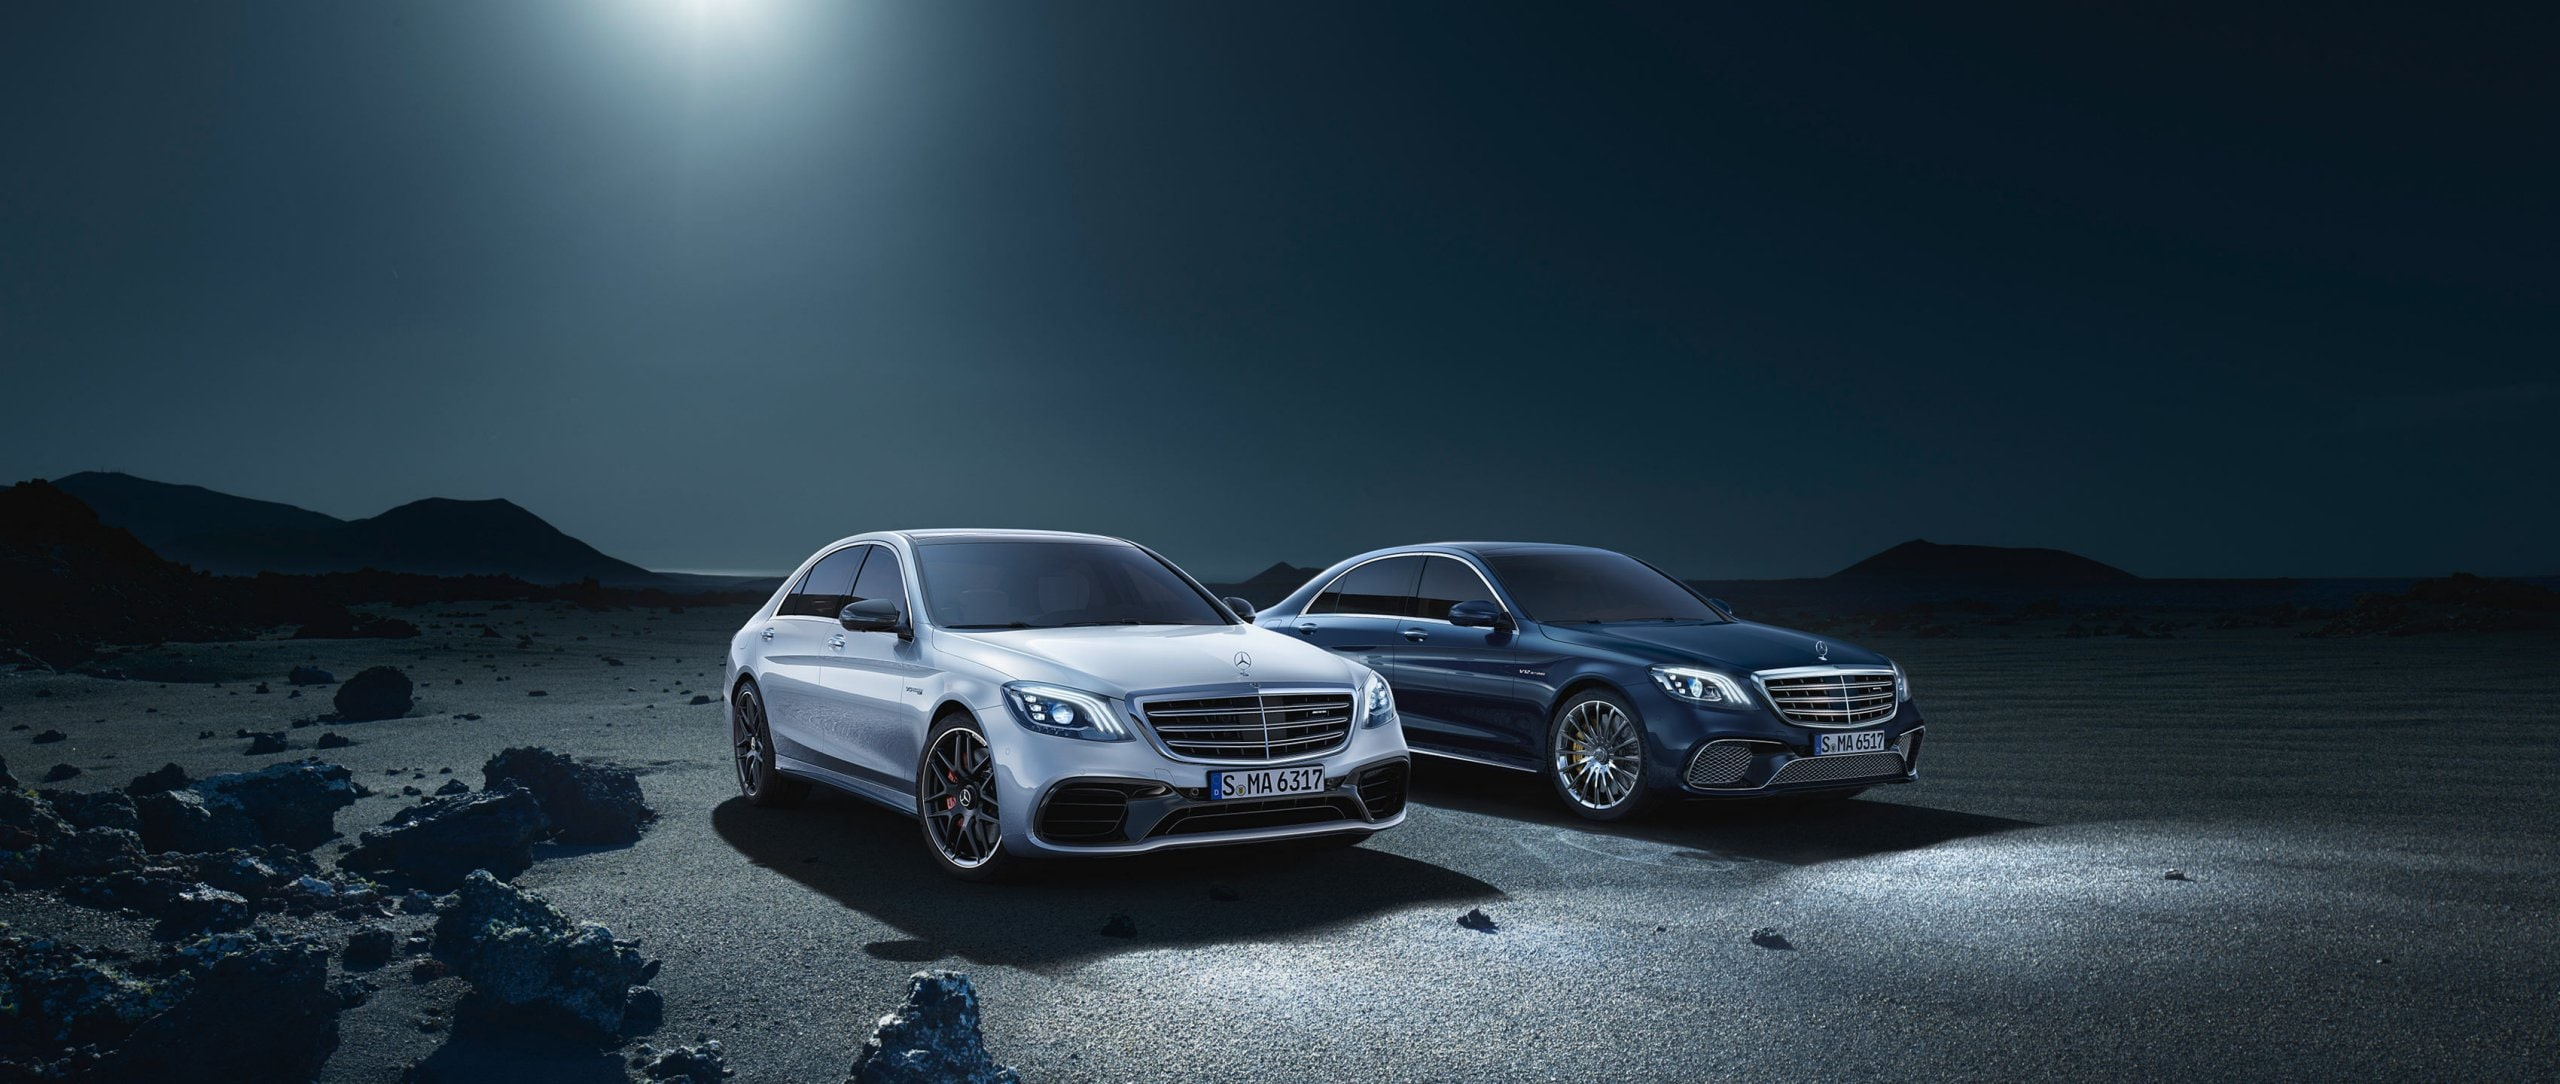 The 2017 Mercedes-AMG S 63 4MATIC+ and the 2017 S 65 (V 222) can be identified from the front by the MULTIBEAM LED headlamps and the redesigned front apron with expressive jet wing.